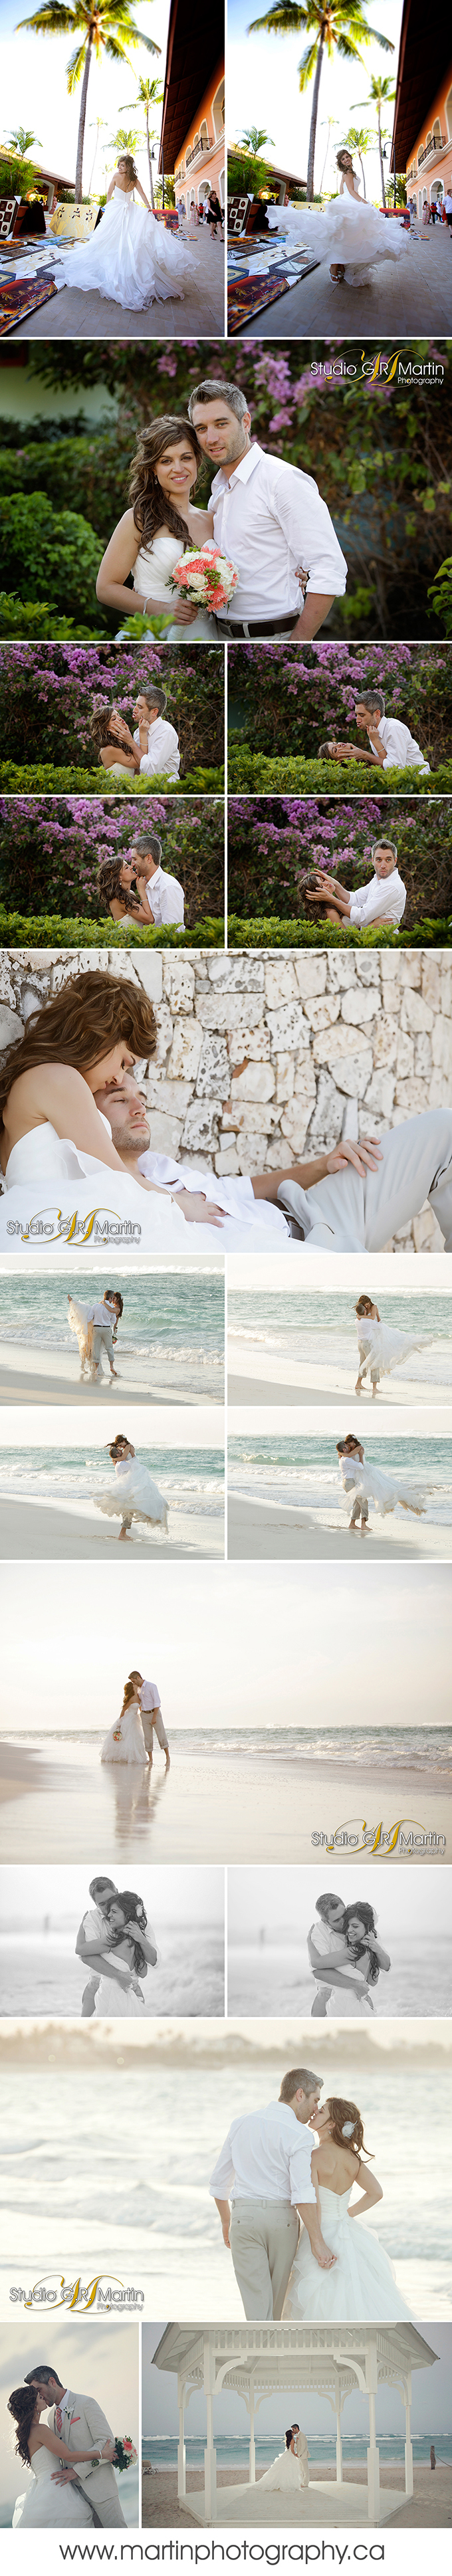 Punta Cana Destination Wedding Photographers Ottawa Wedding Photographers Majestic Colonial Punta Cana